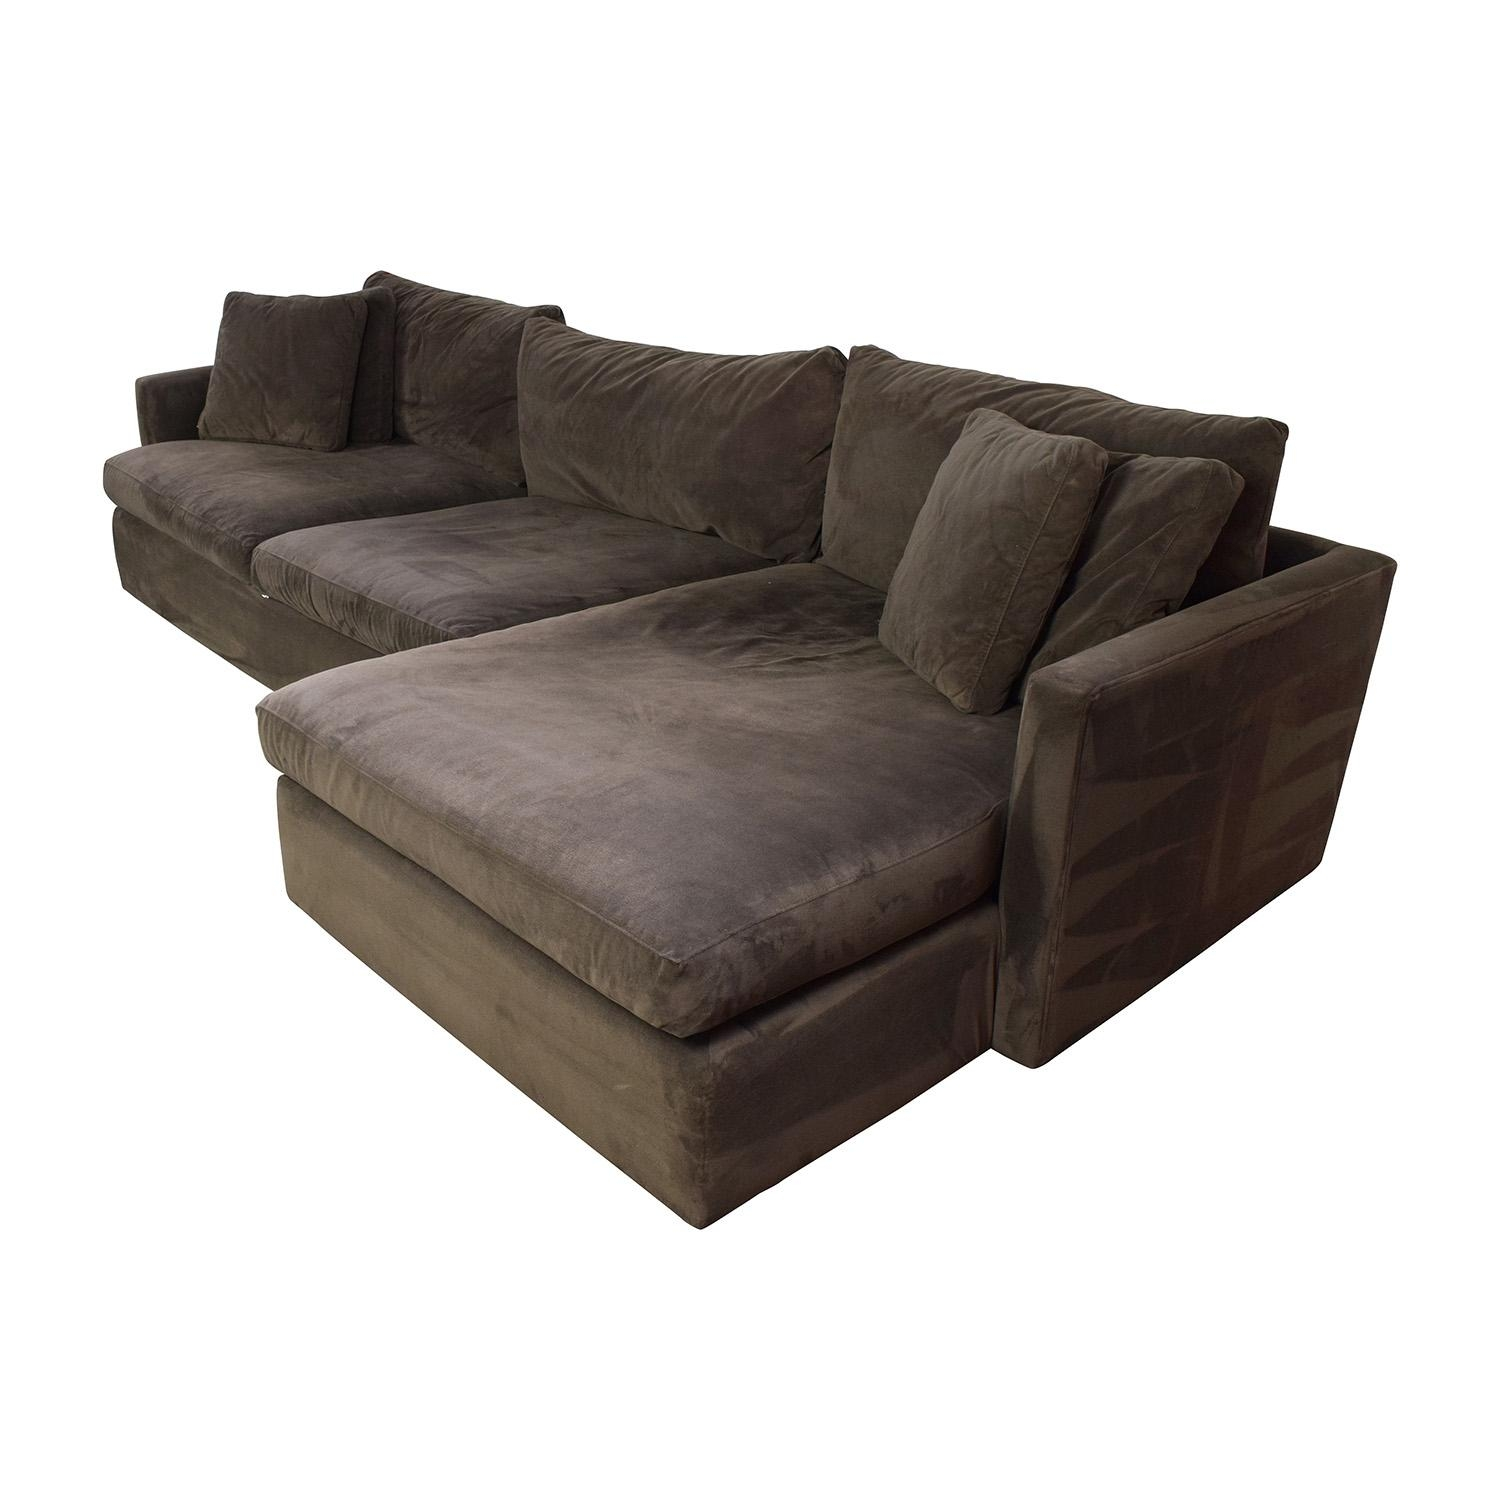 89% Off – Crate And Barrel Crate & Barrel Brown Left Arm Sectional Within Sectional Crate And Barrel (Photo 7 of 20)